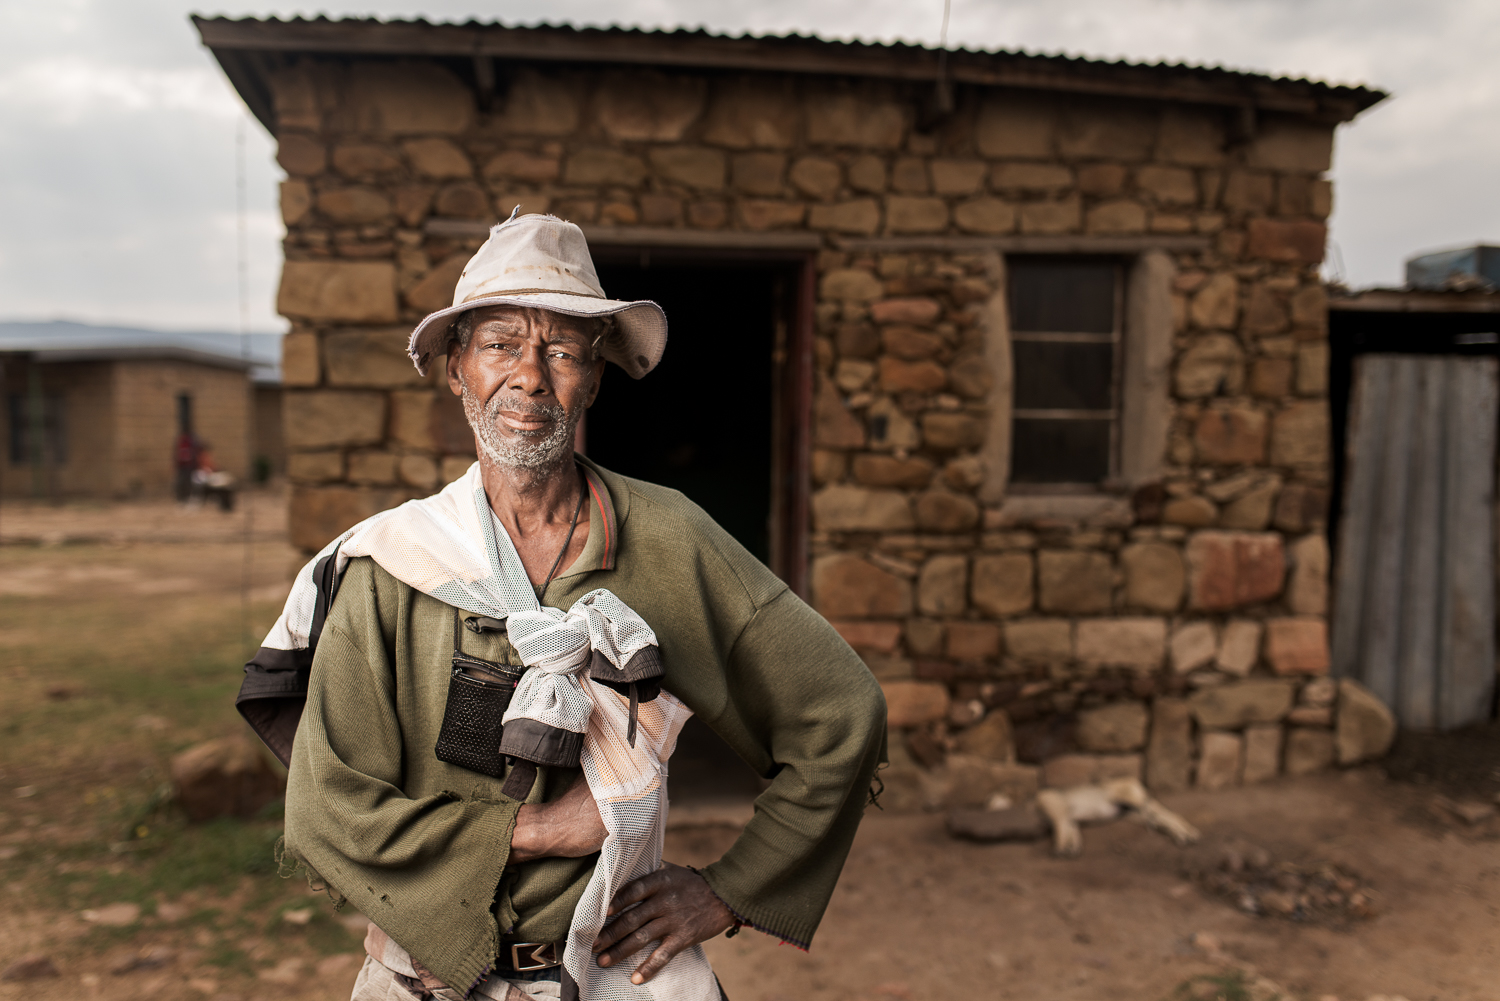 Joseph Lebone  started working in the gold mines in 1972 when he was 21 years old. He worked for 33 years until he was diagnosed with silicosis at the mine hospital. He was compensated R40 000 and only sent home when he developed tuberculosis. He started working there because he saw others who were managing to find jobs and provide for their families. Now he has to survive off the land. He grows vegetables, maize and wheat.